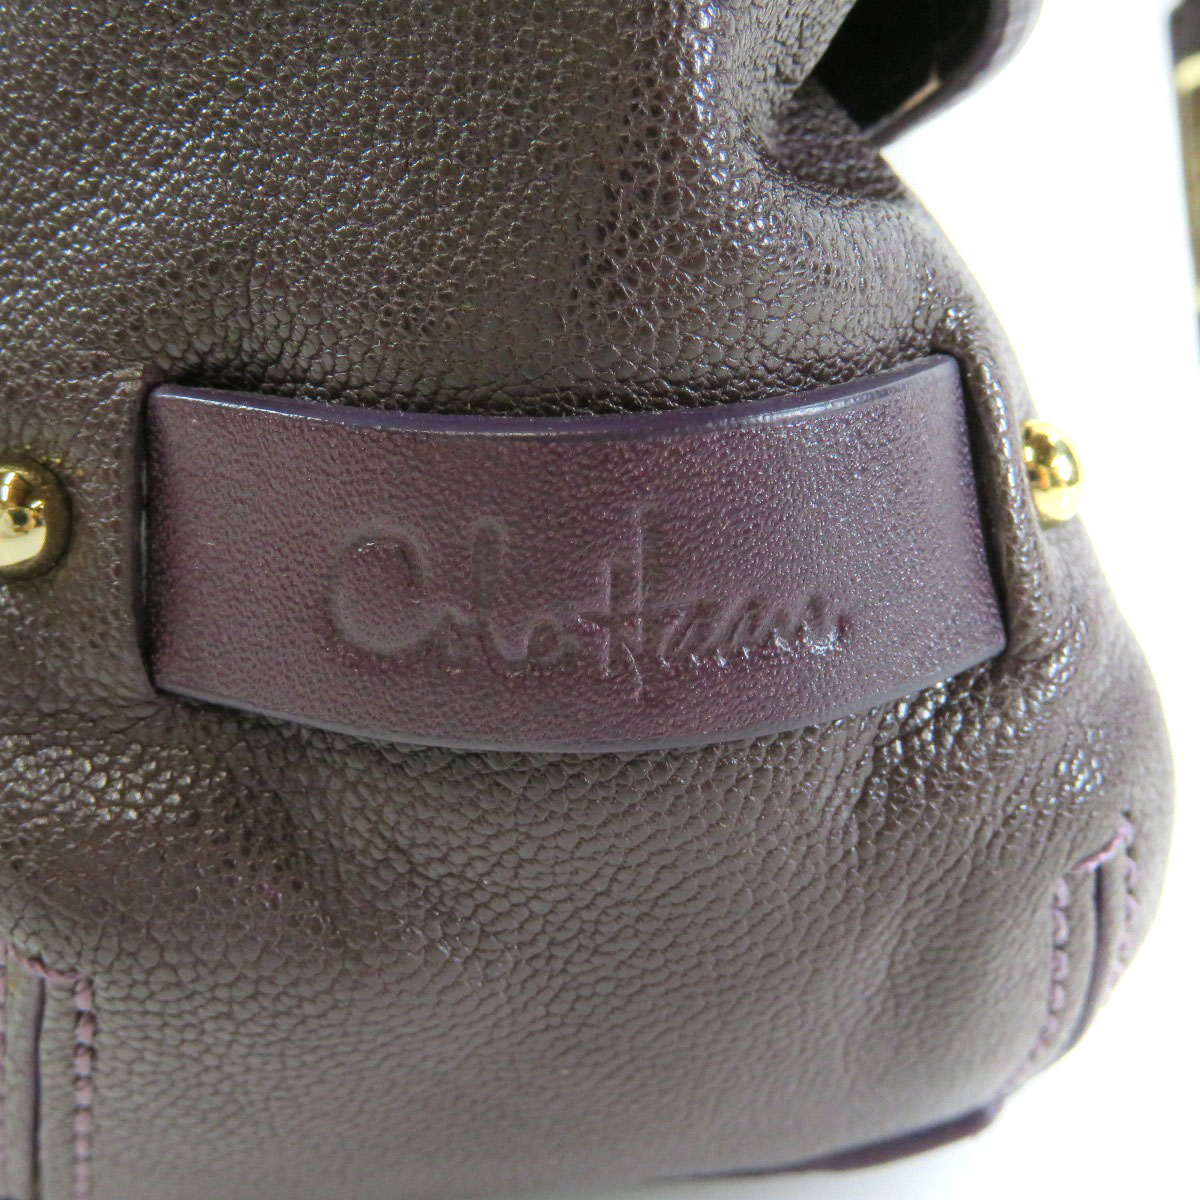 The design handbag leather Lady's which includes Cole Haan knitting